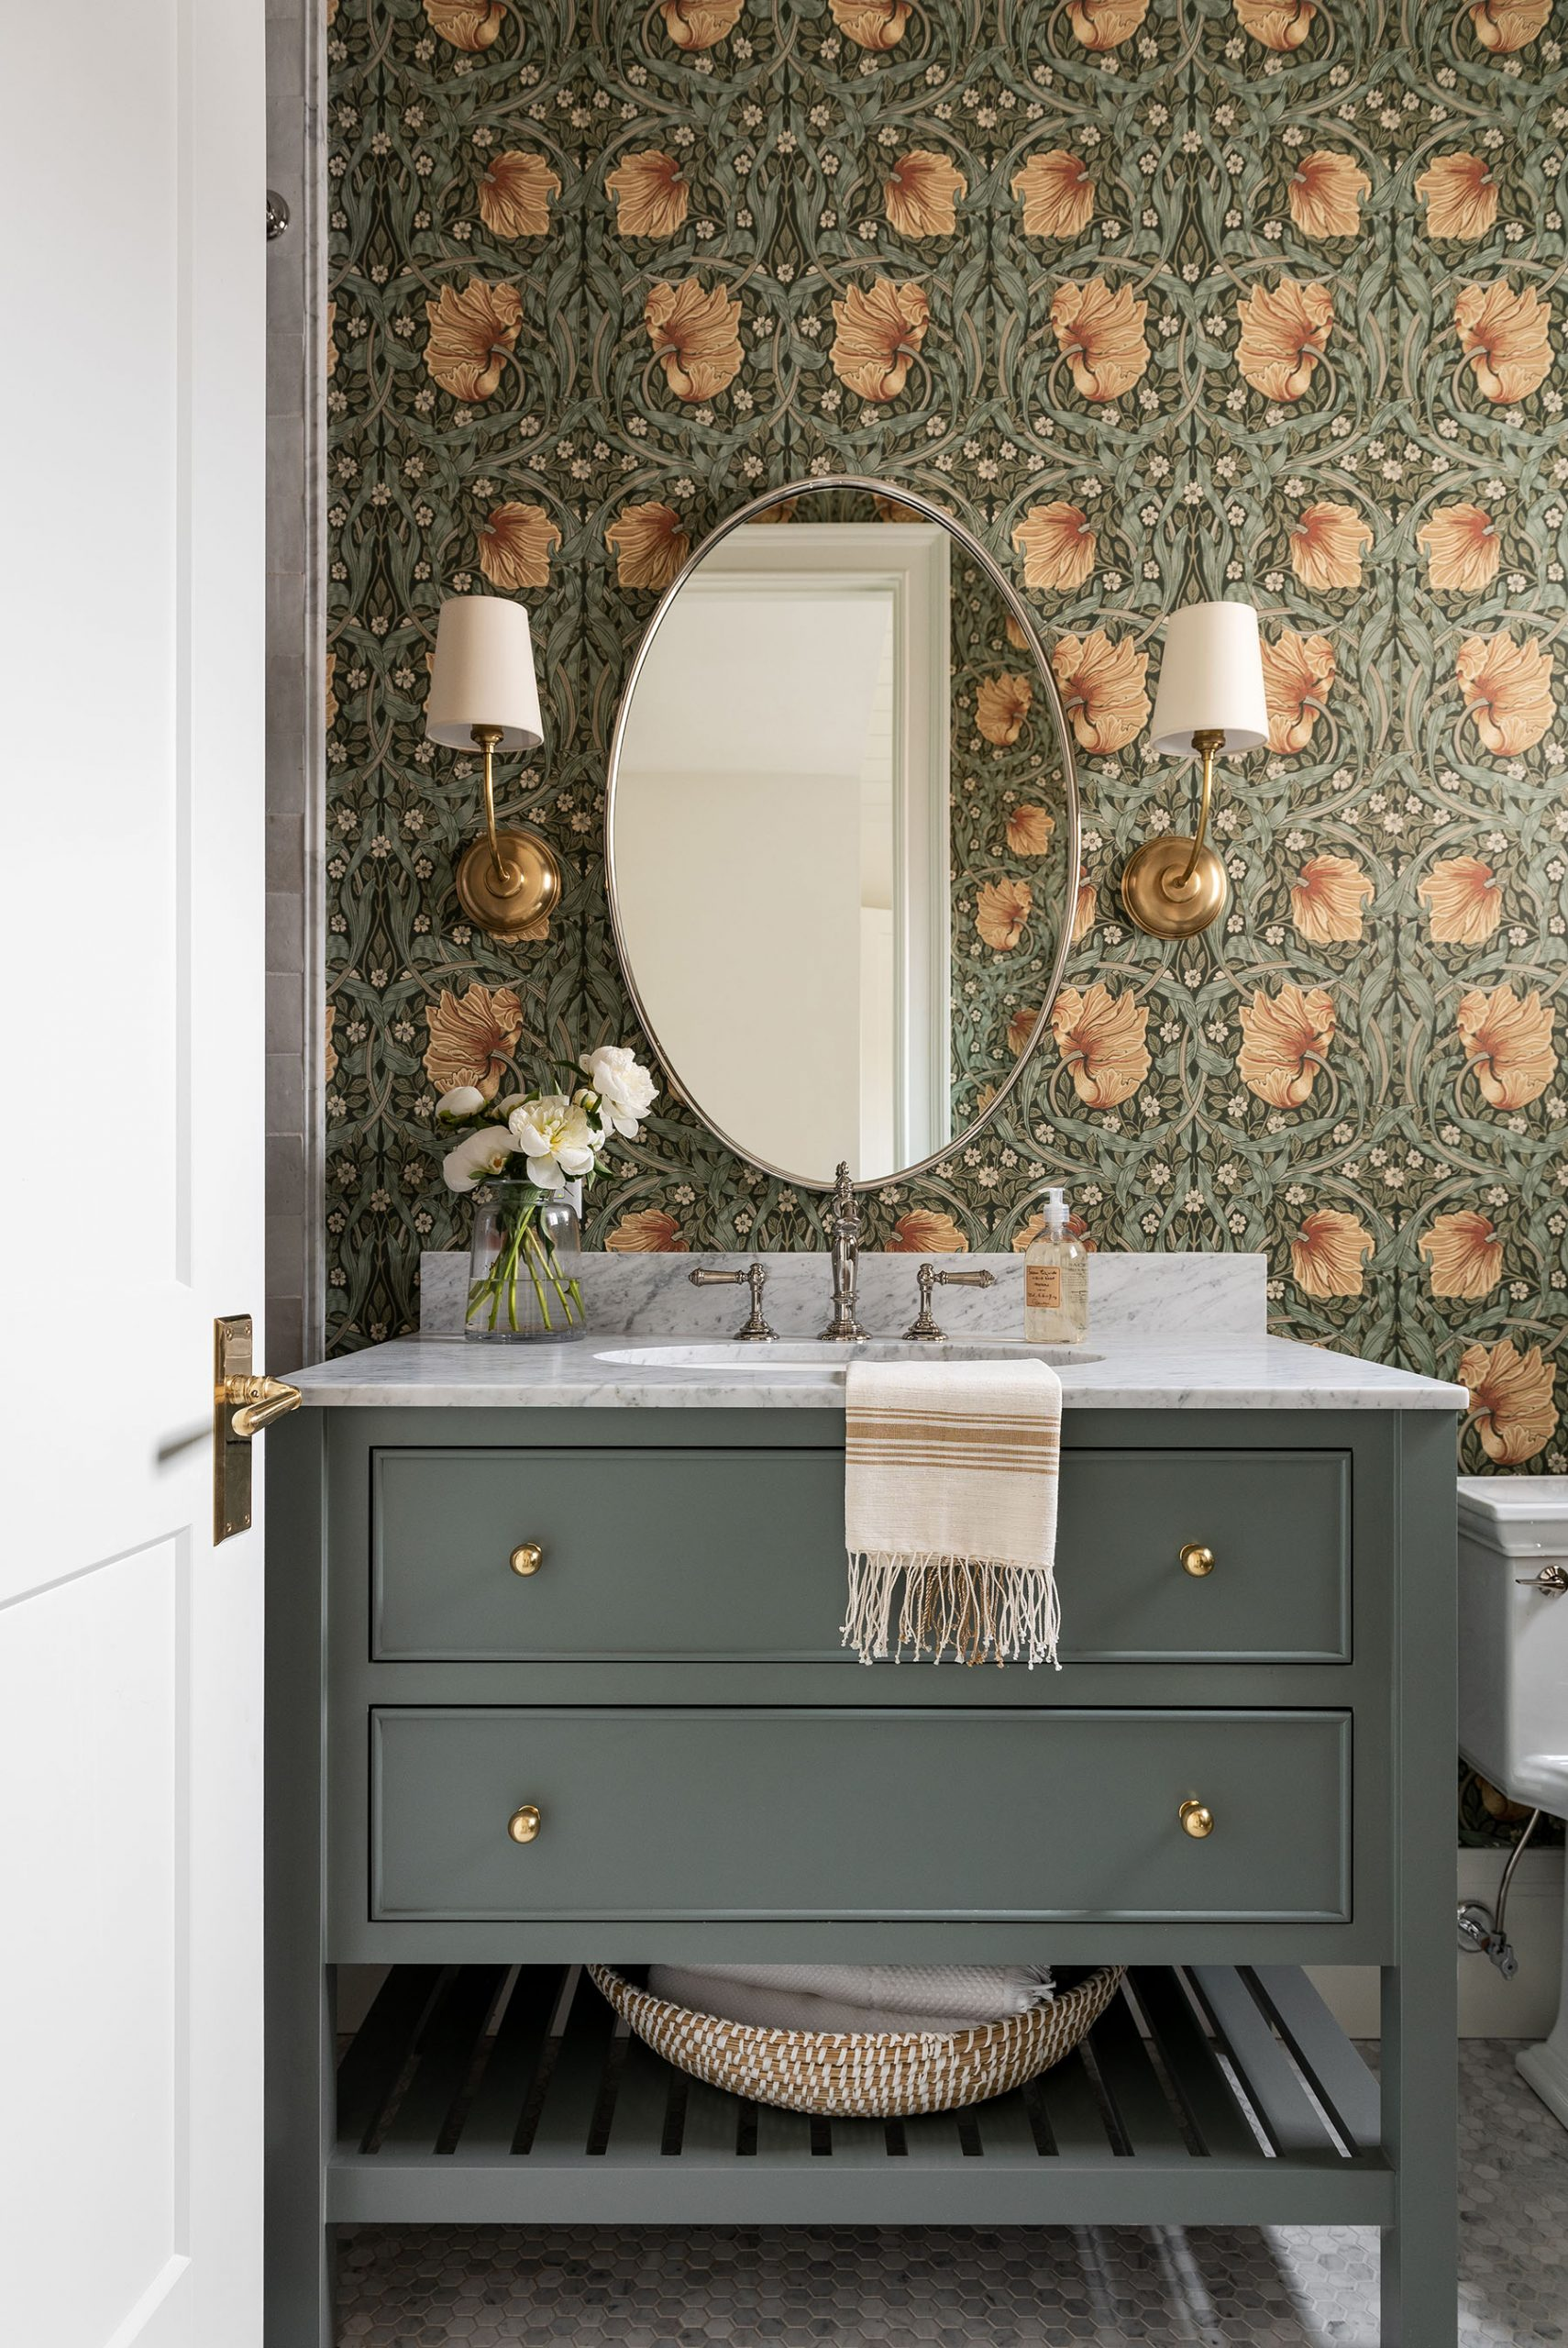 Adding Shades of Green to Your Design